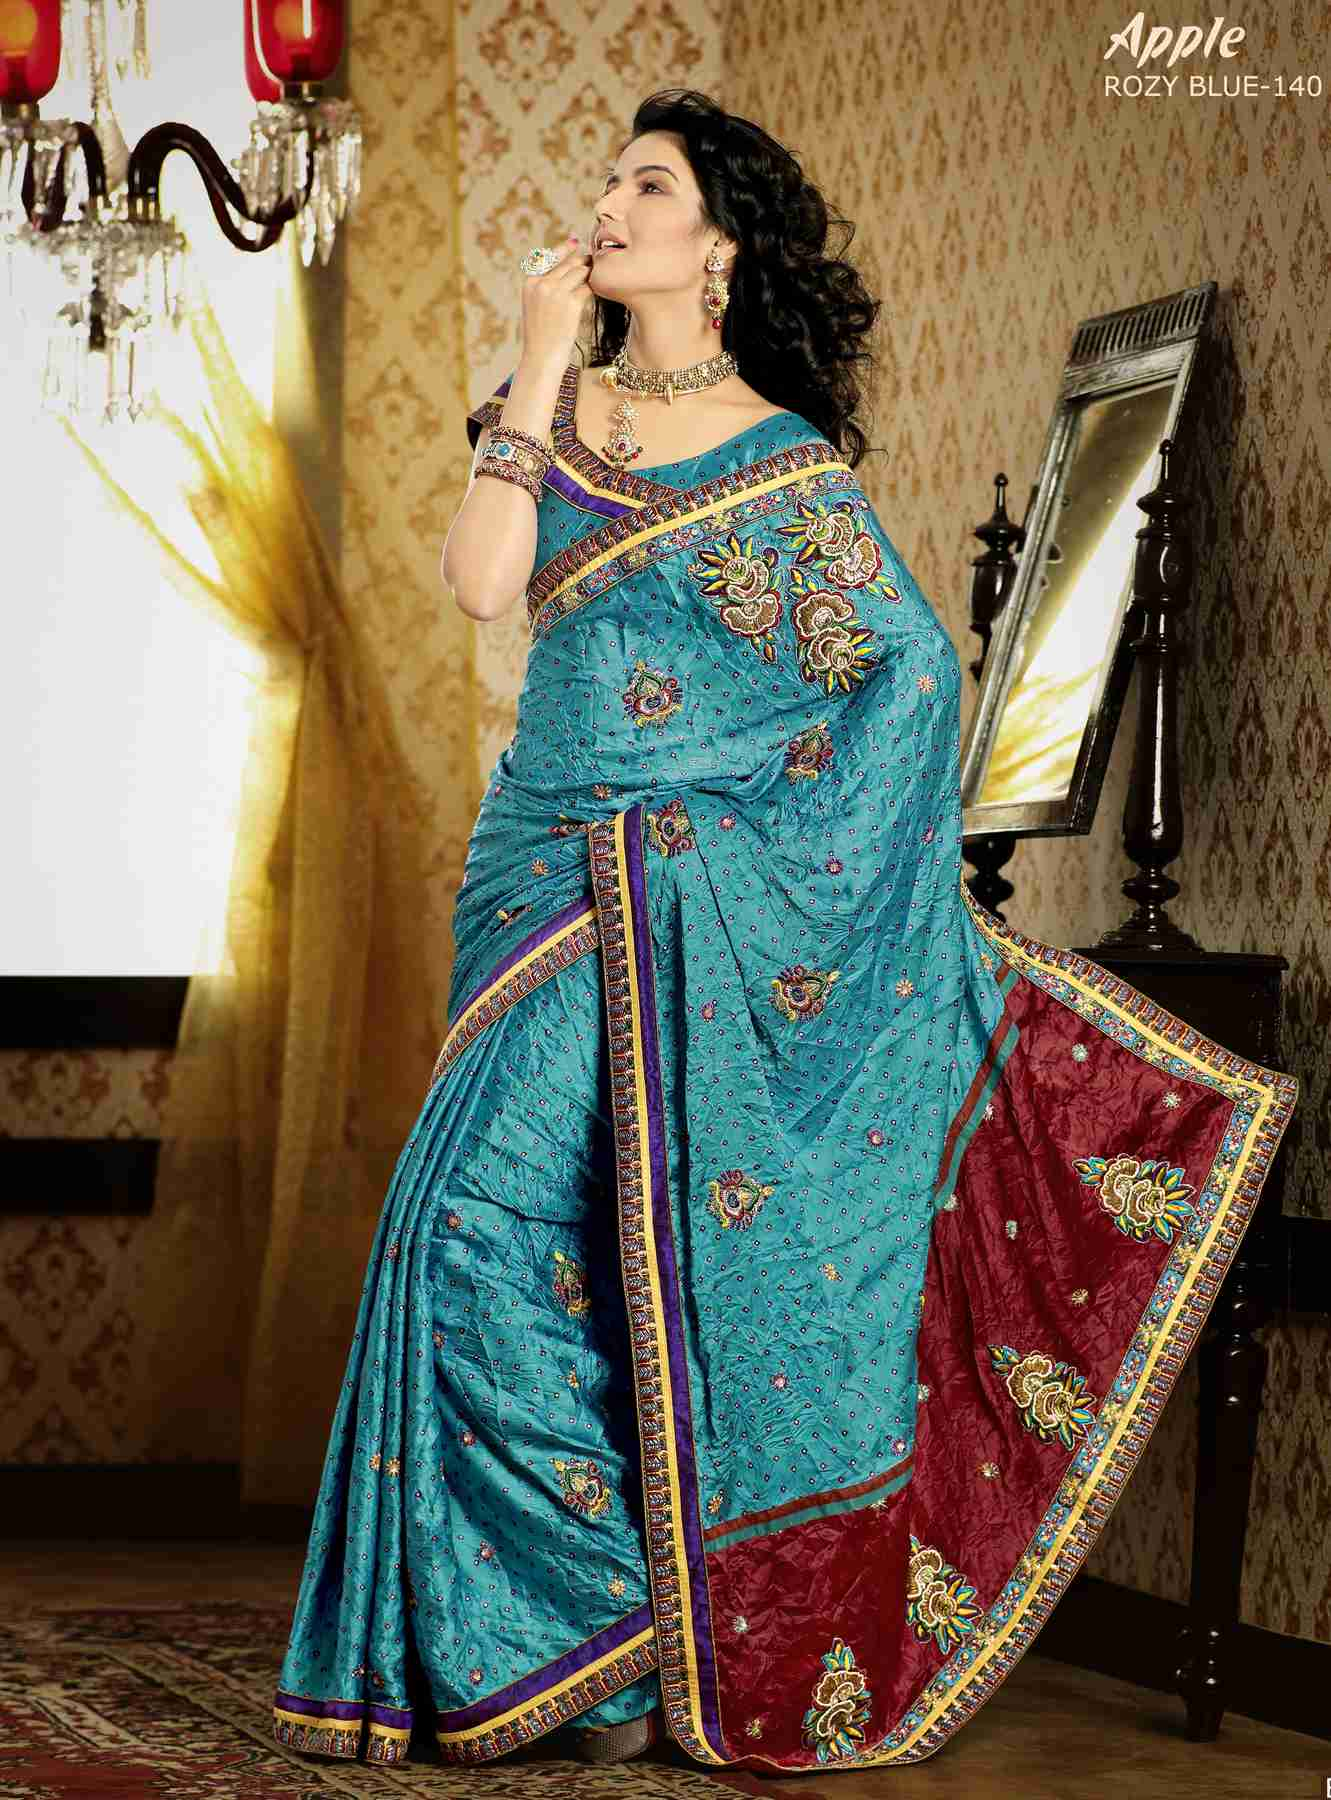 Deepa Turquoise Blue Faux Crepe Luxury Party Wear Sari saree